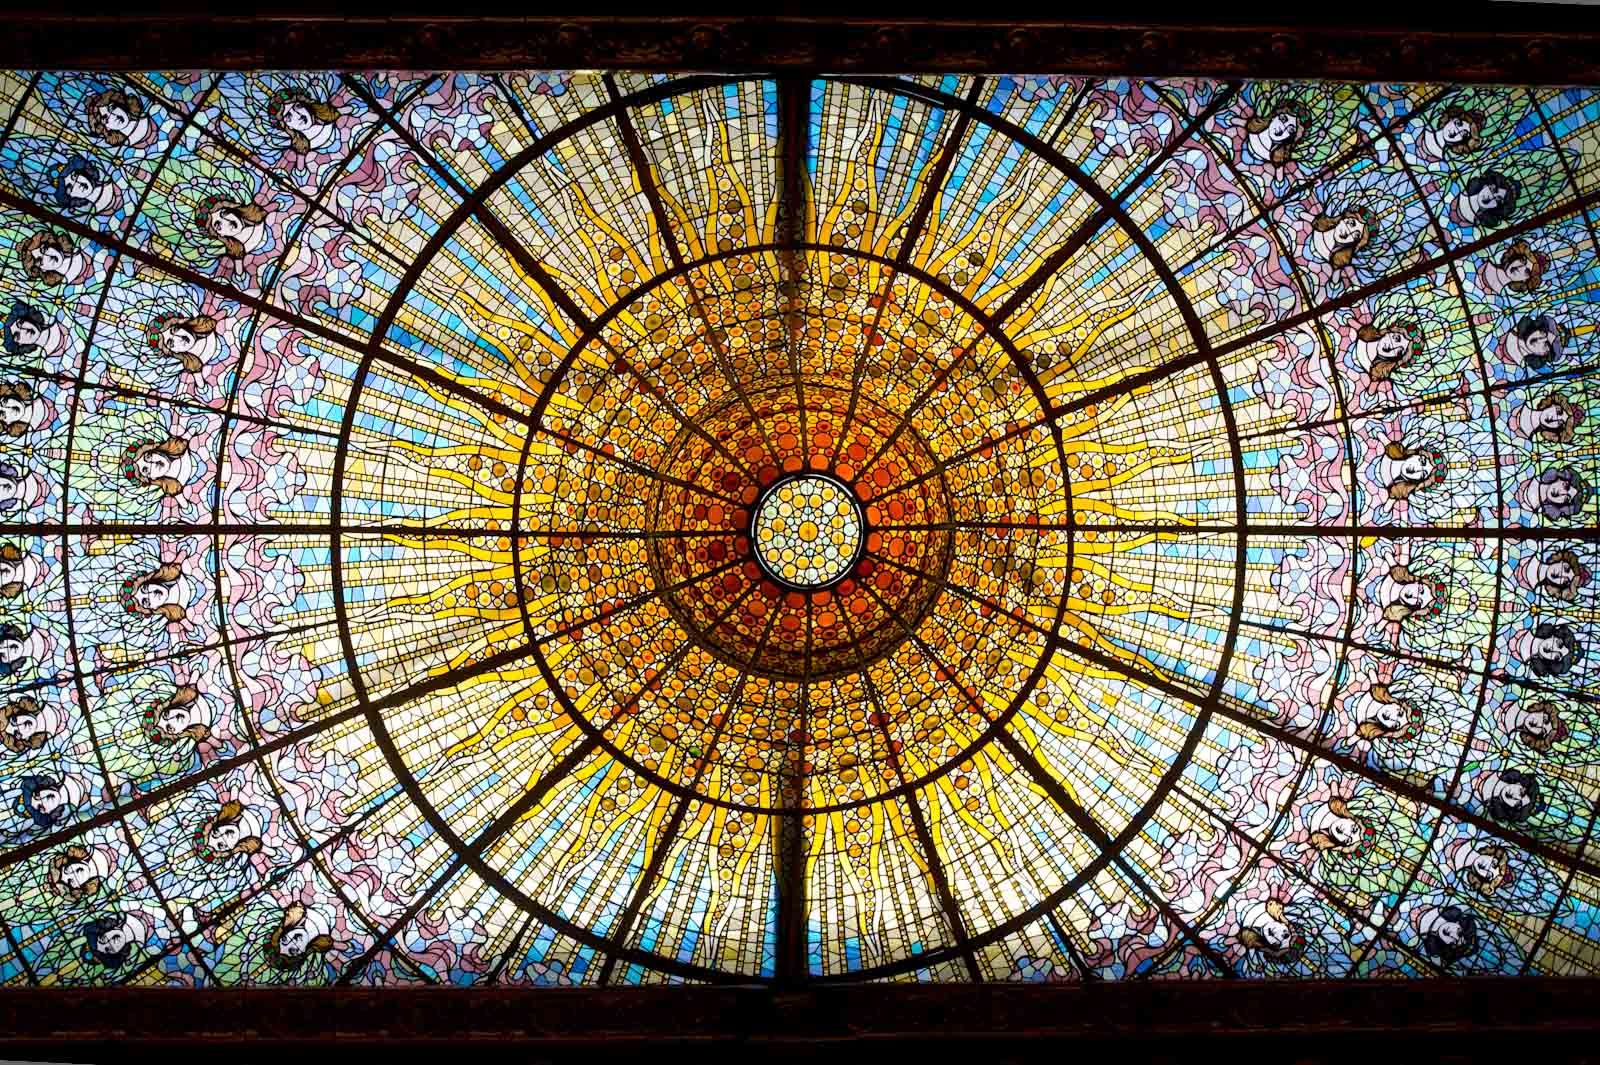 The stained glass roof at the Palau de la Música Catalana, photograph by Sandy Macdonald.